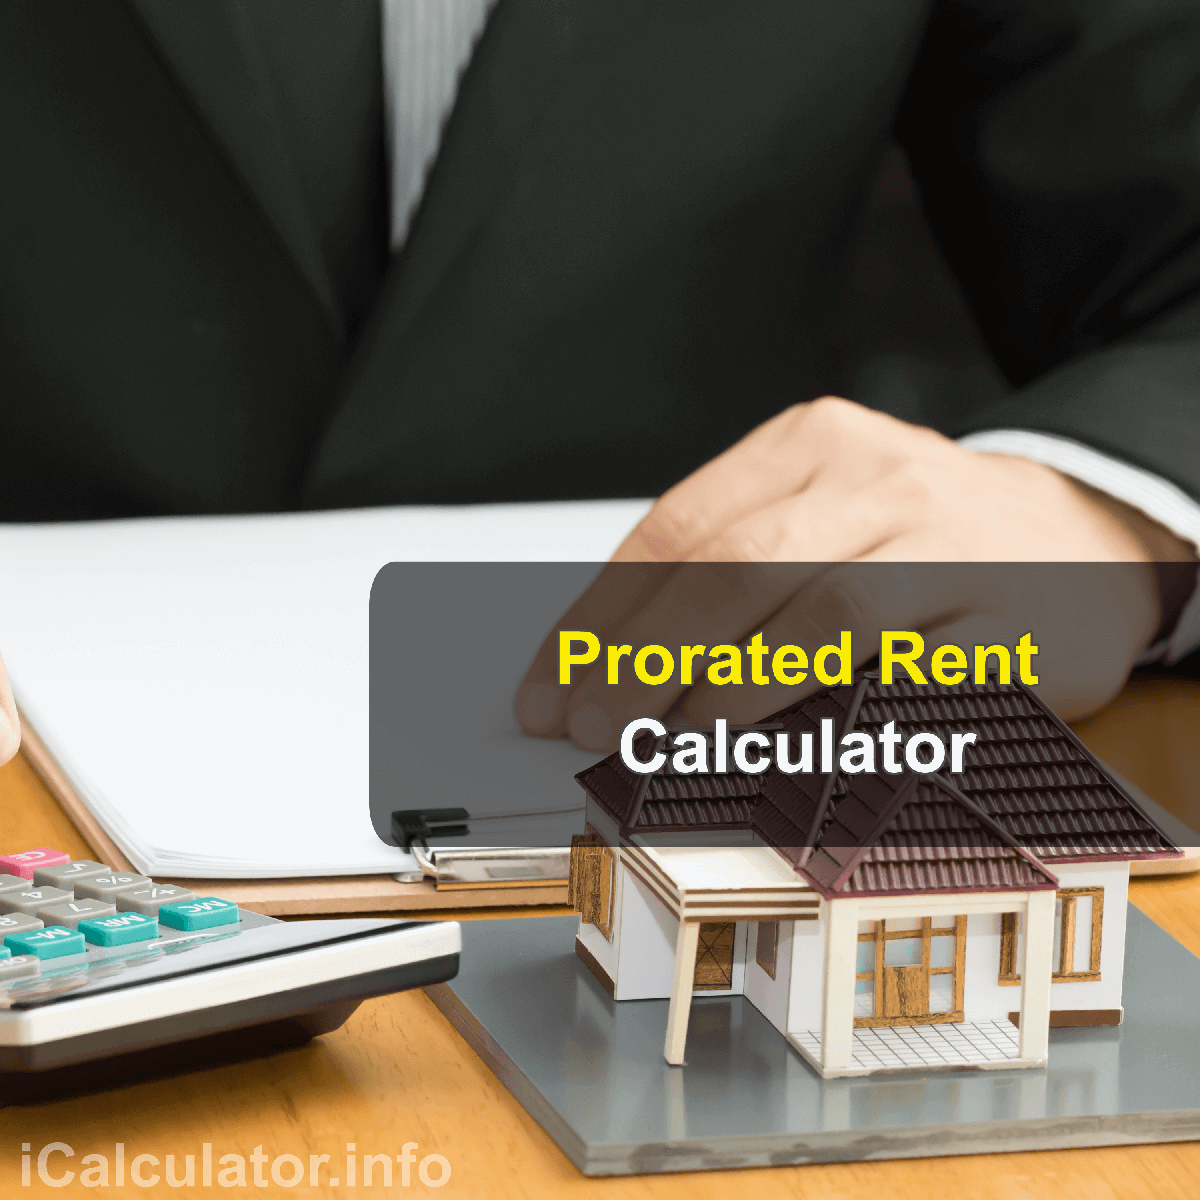 Prorated Rent Calculator. This image provides details of how to calculate the prorated rent using a good calculator and notepad. By using the either of the prorated formula, the Prorated Rent Calculator provides a true calculation of how much rent is due for the period which forms part of a rental period.